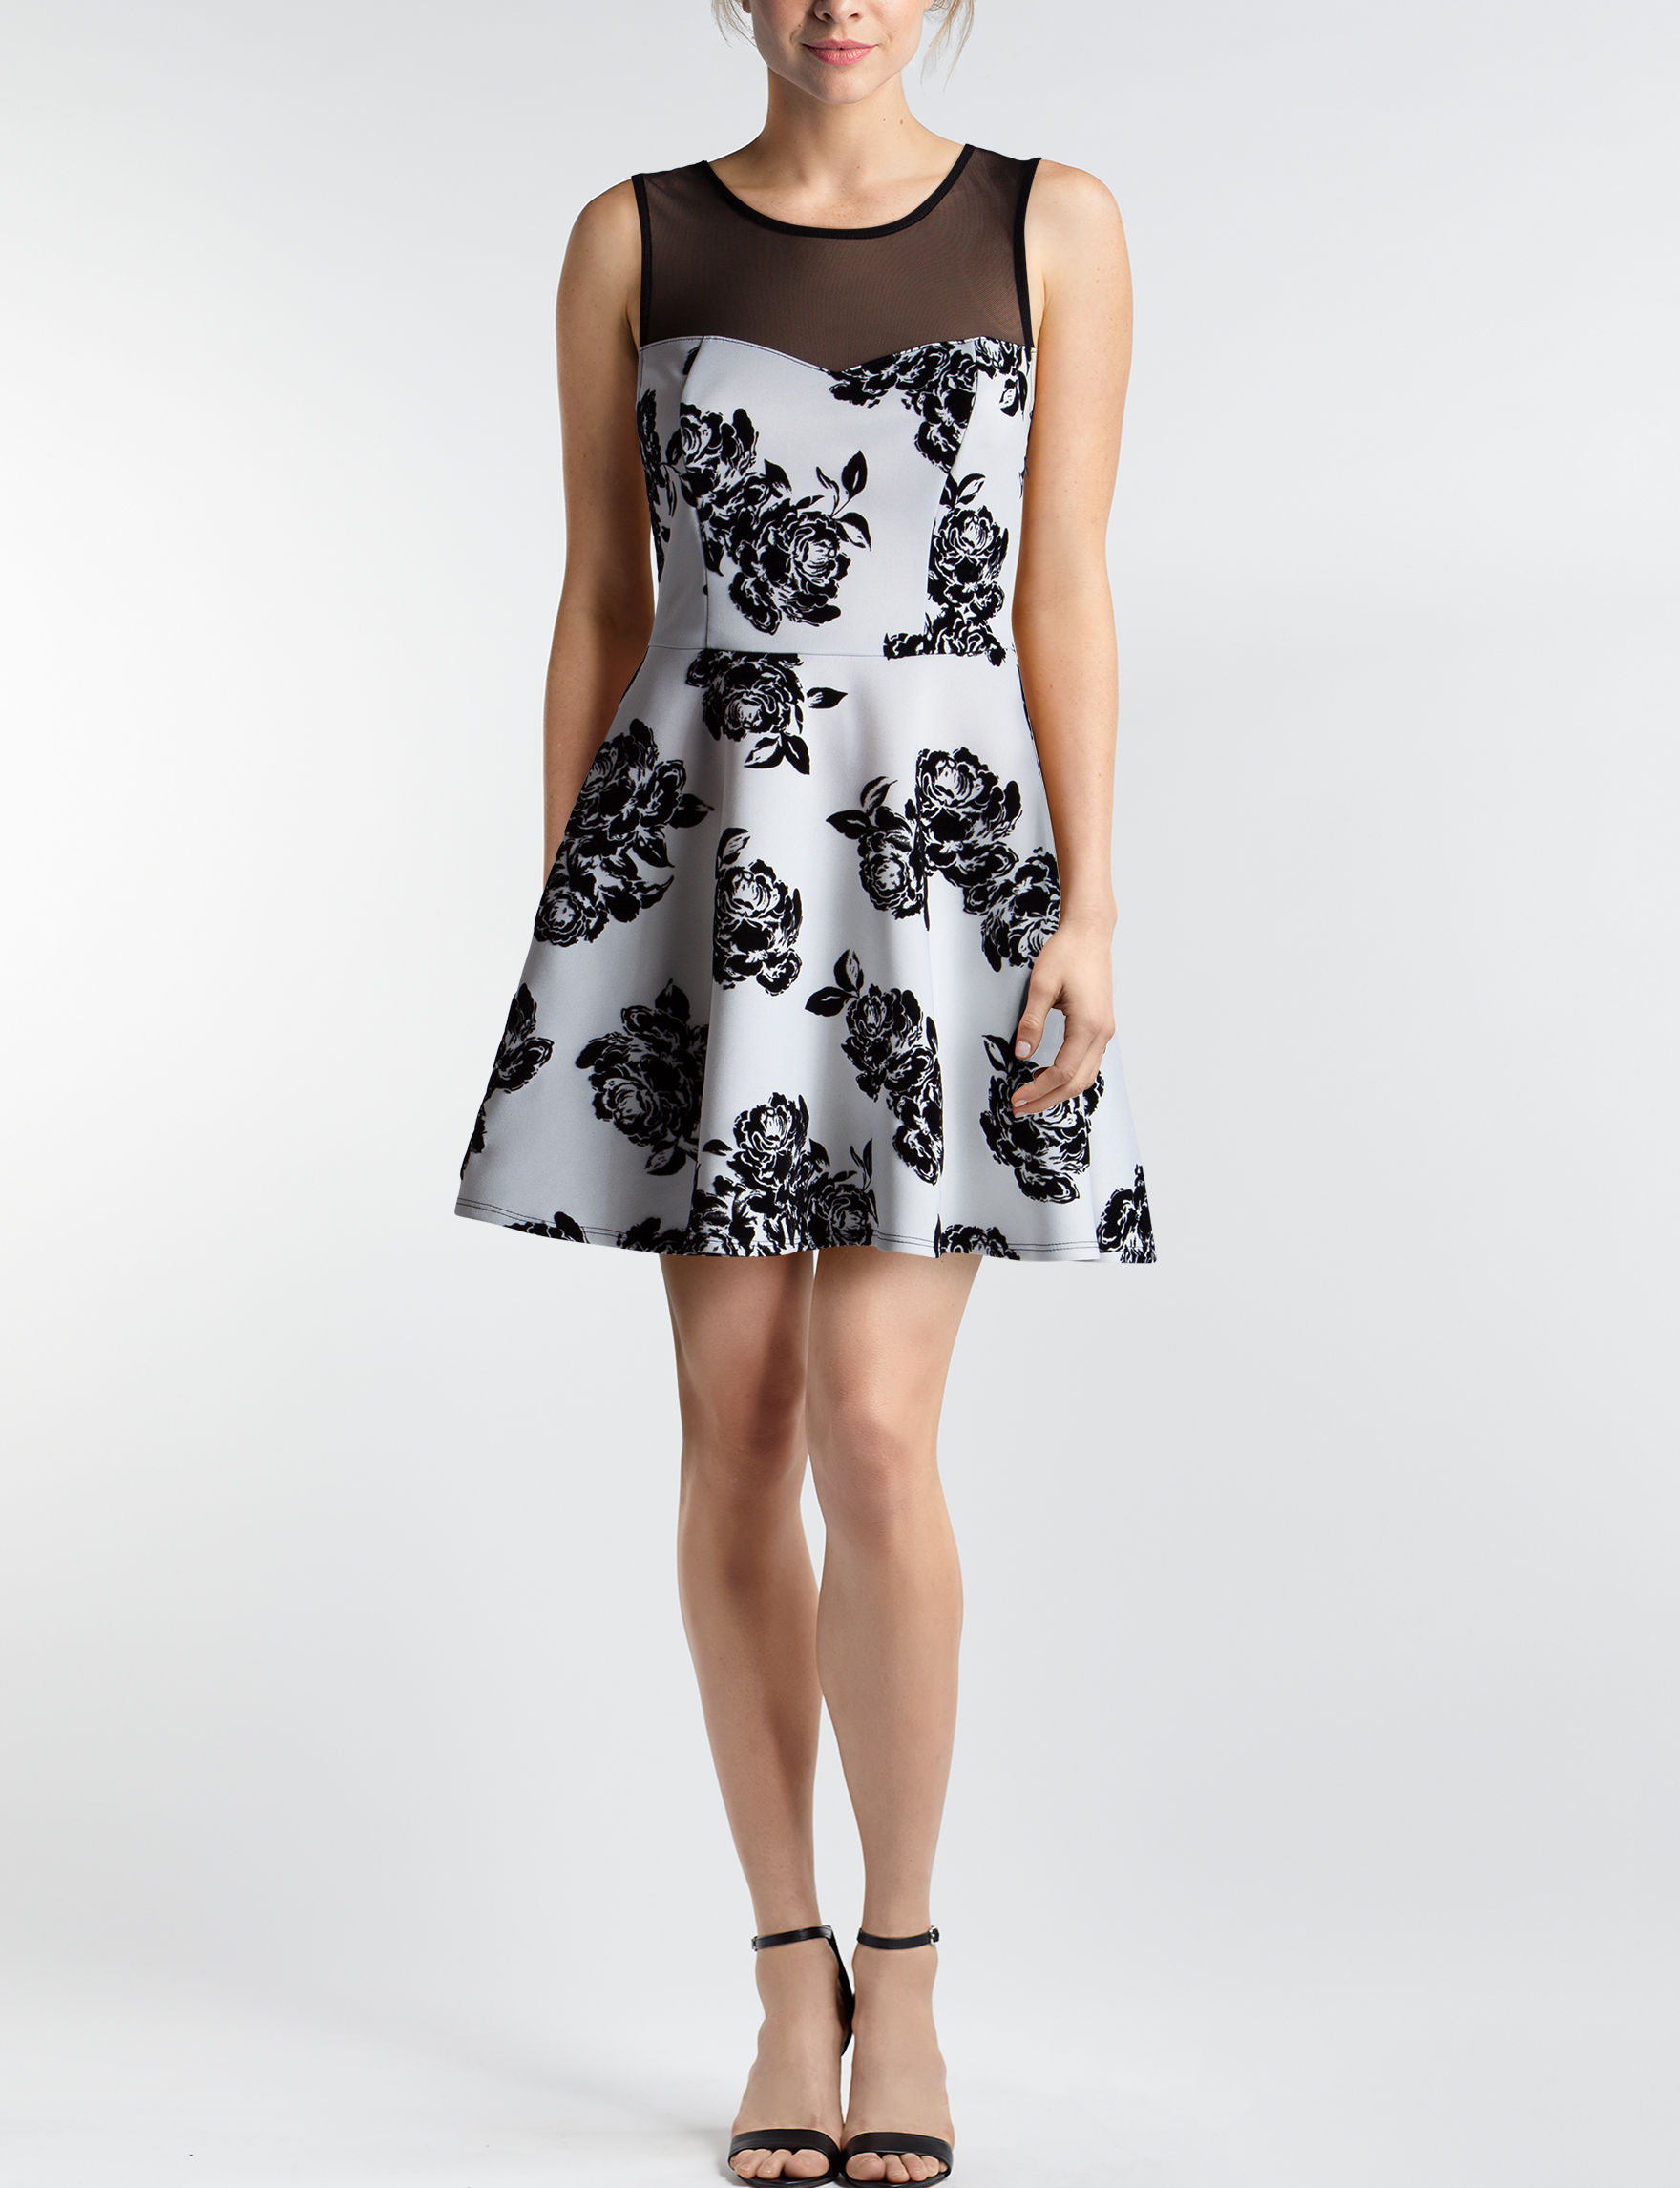 Trixxi Ivory Floral Cocktail & Party Evening & Formal Fit & Flare Dresses